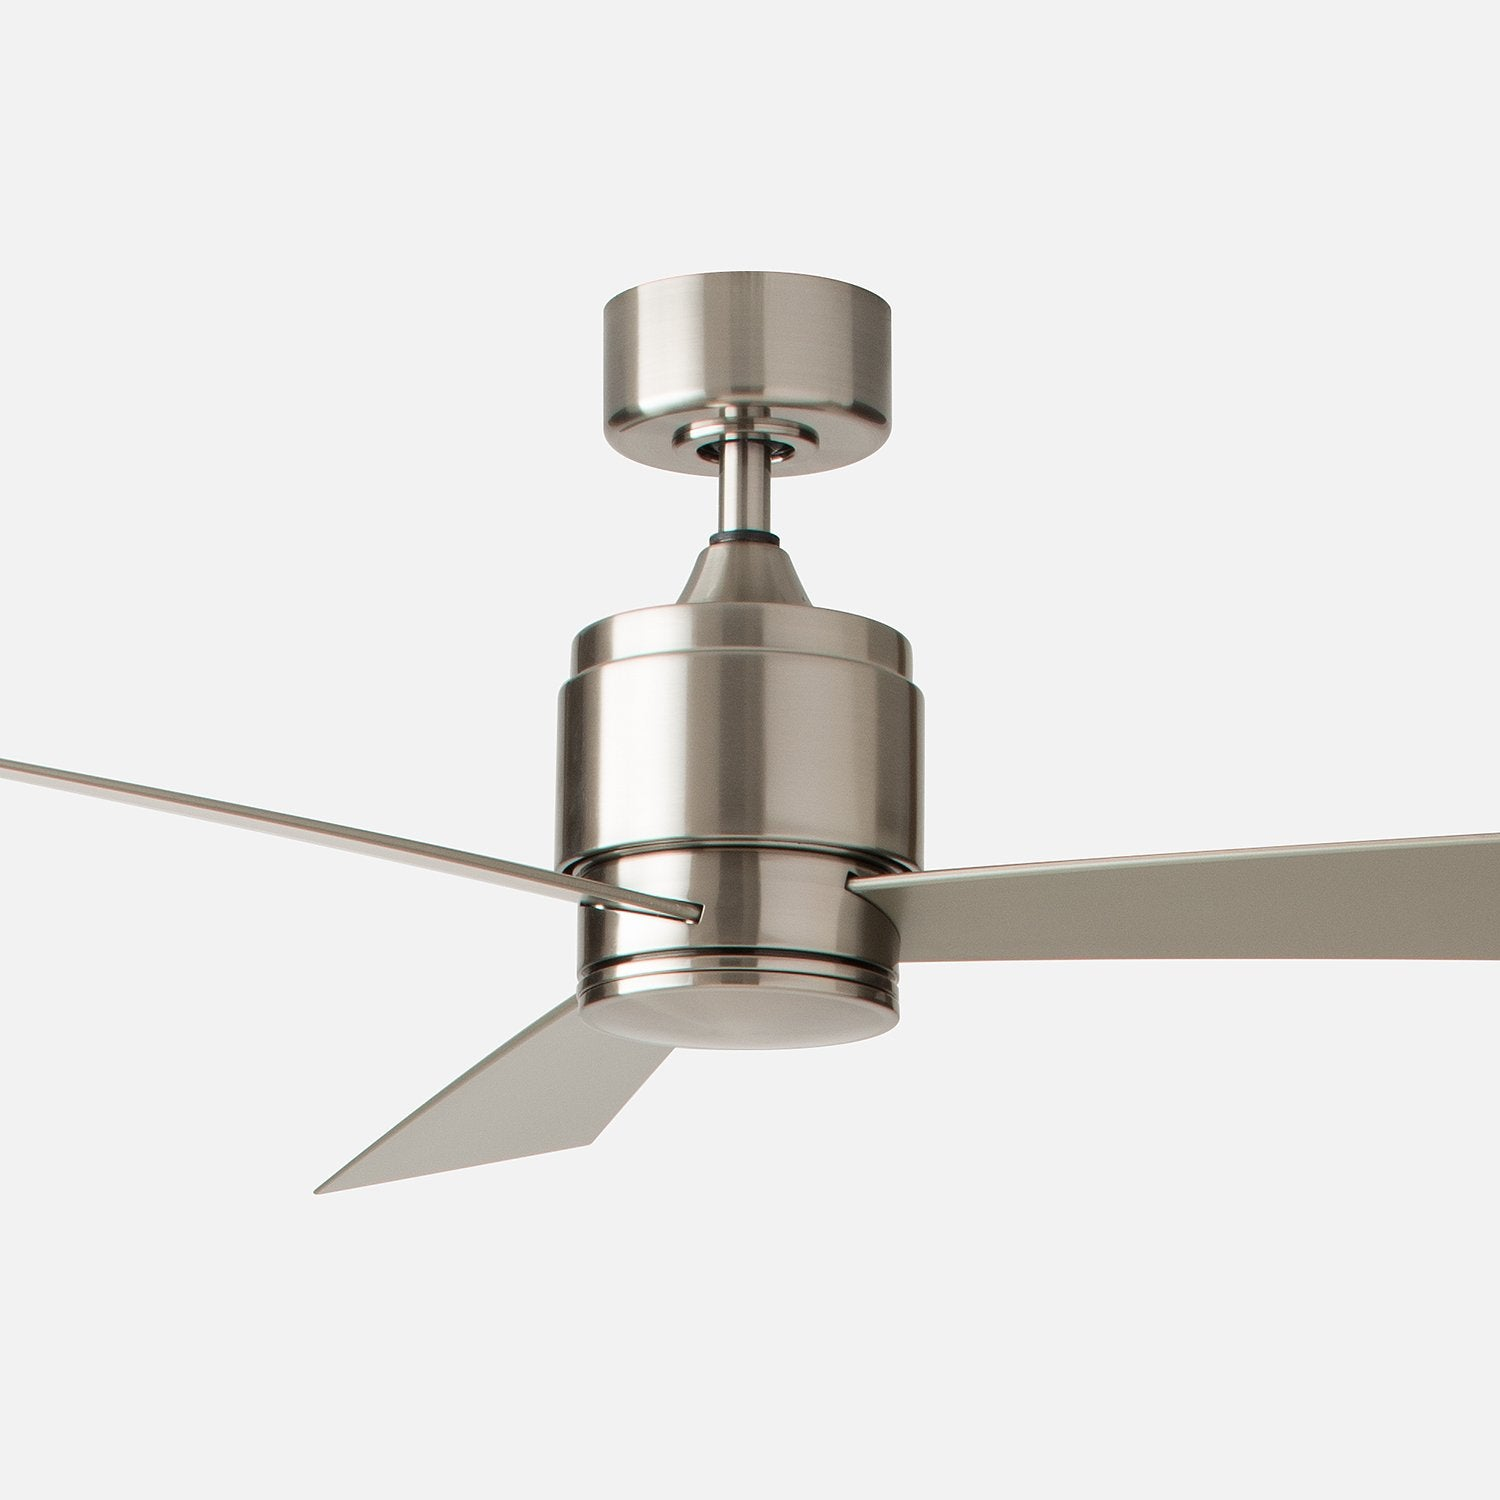 Zonix 52 led ceiling fan brushed nickel schoolhouse zonix 52 aloadofball